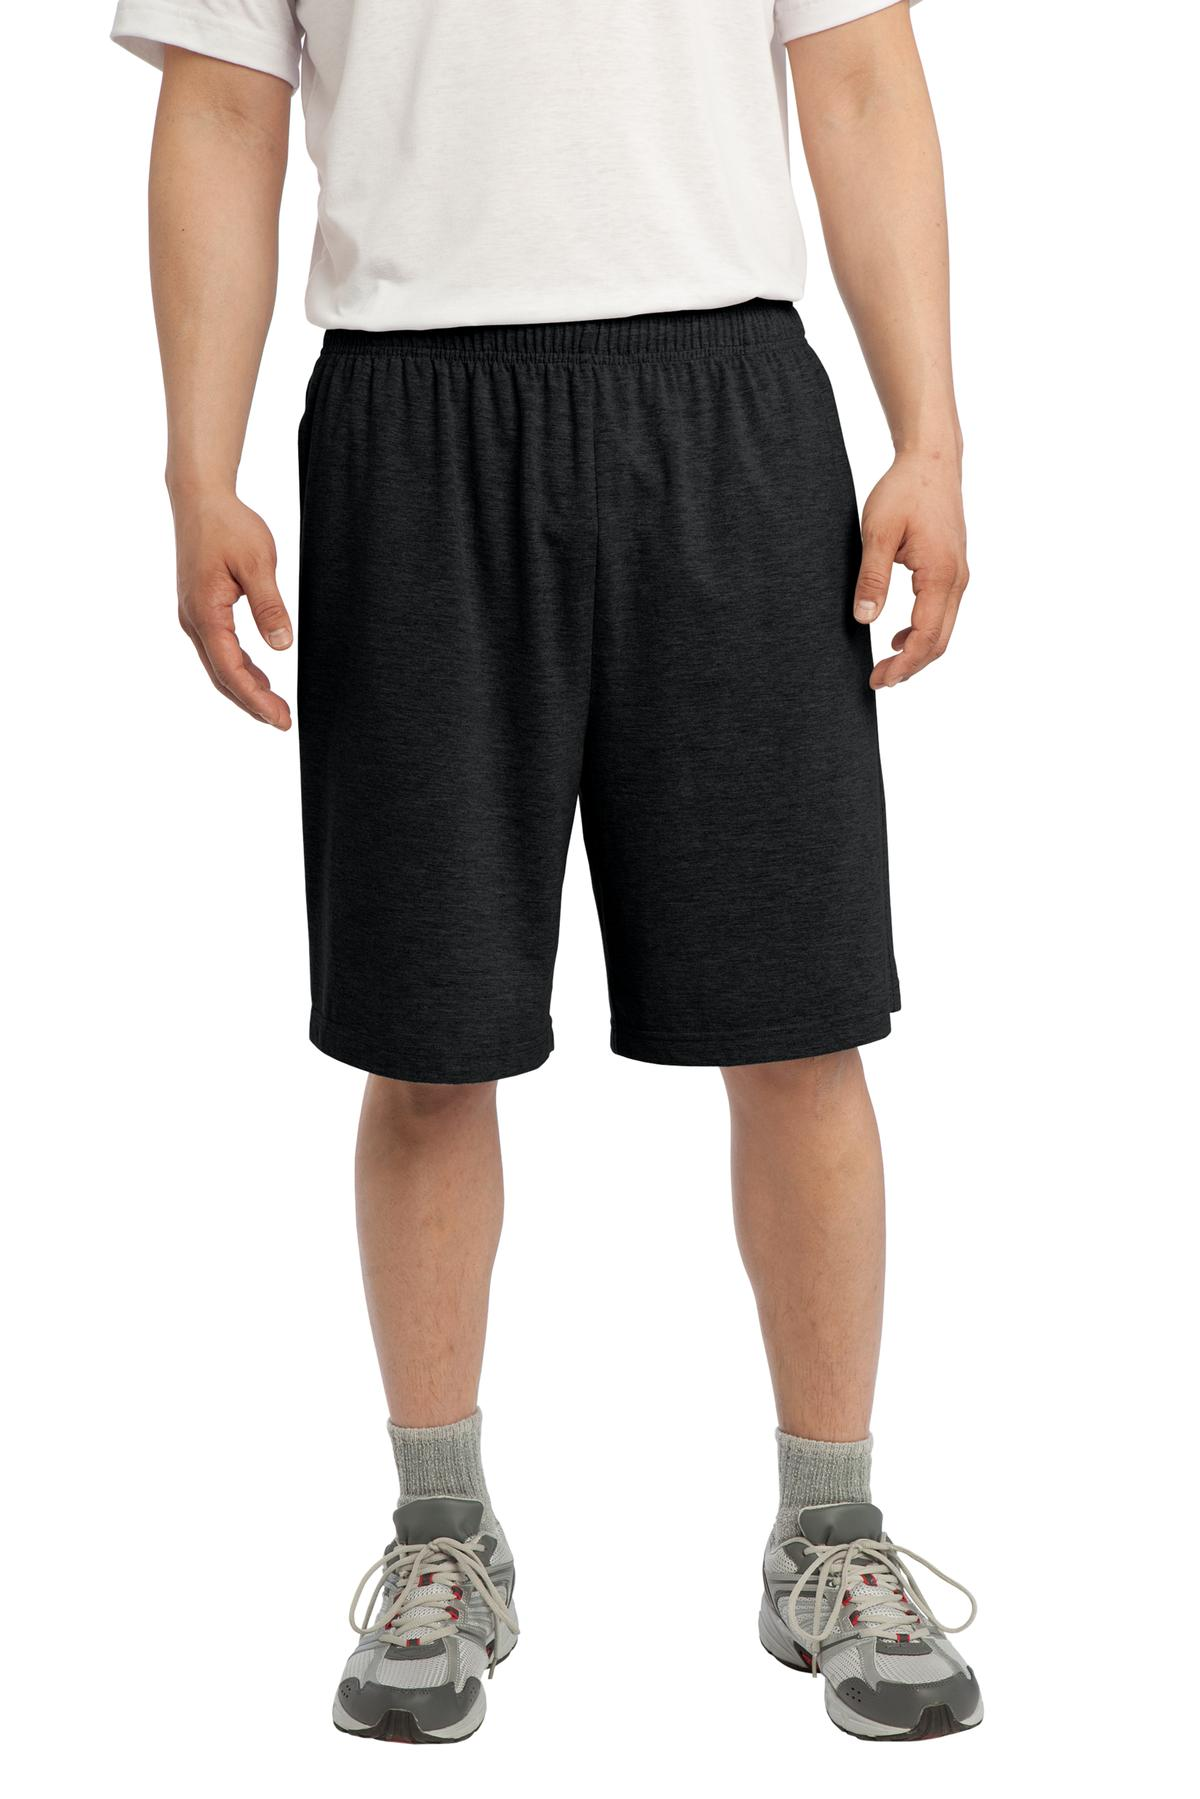 Sport-Tek ®  Jersey Knit Short with Pockets. ST310 - Black